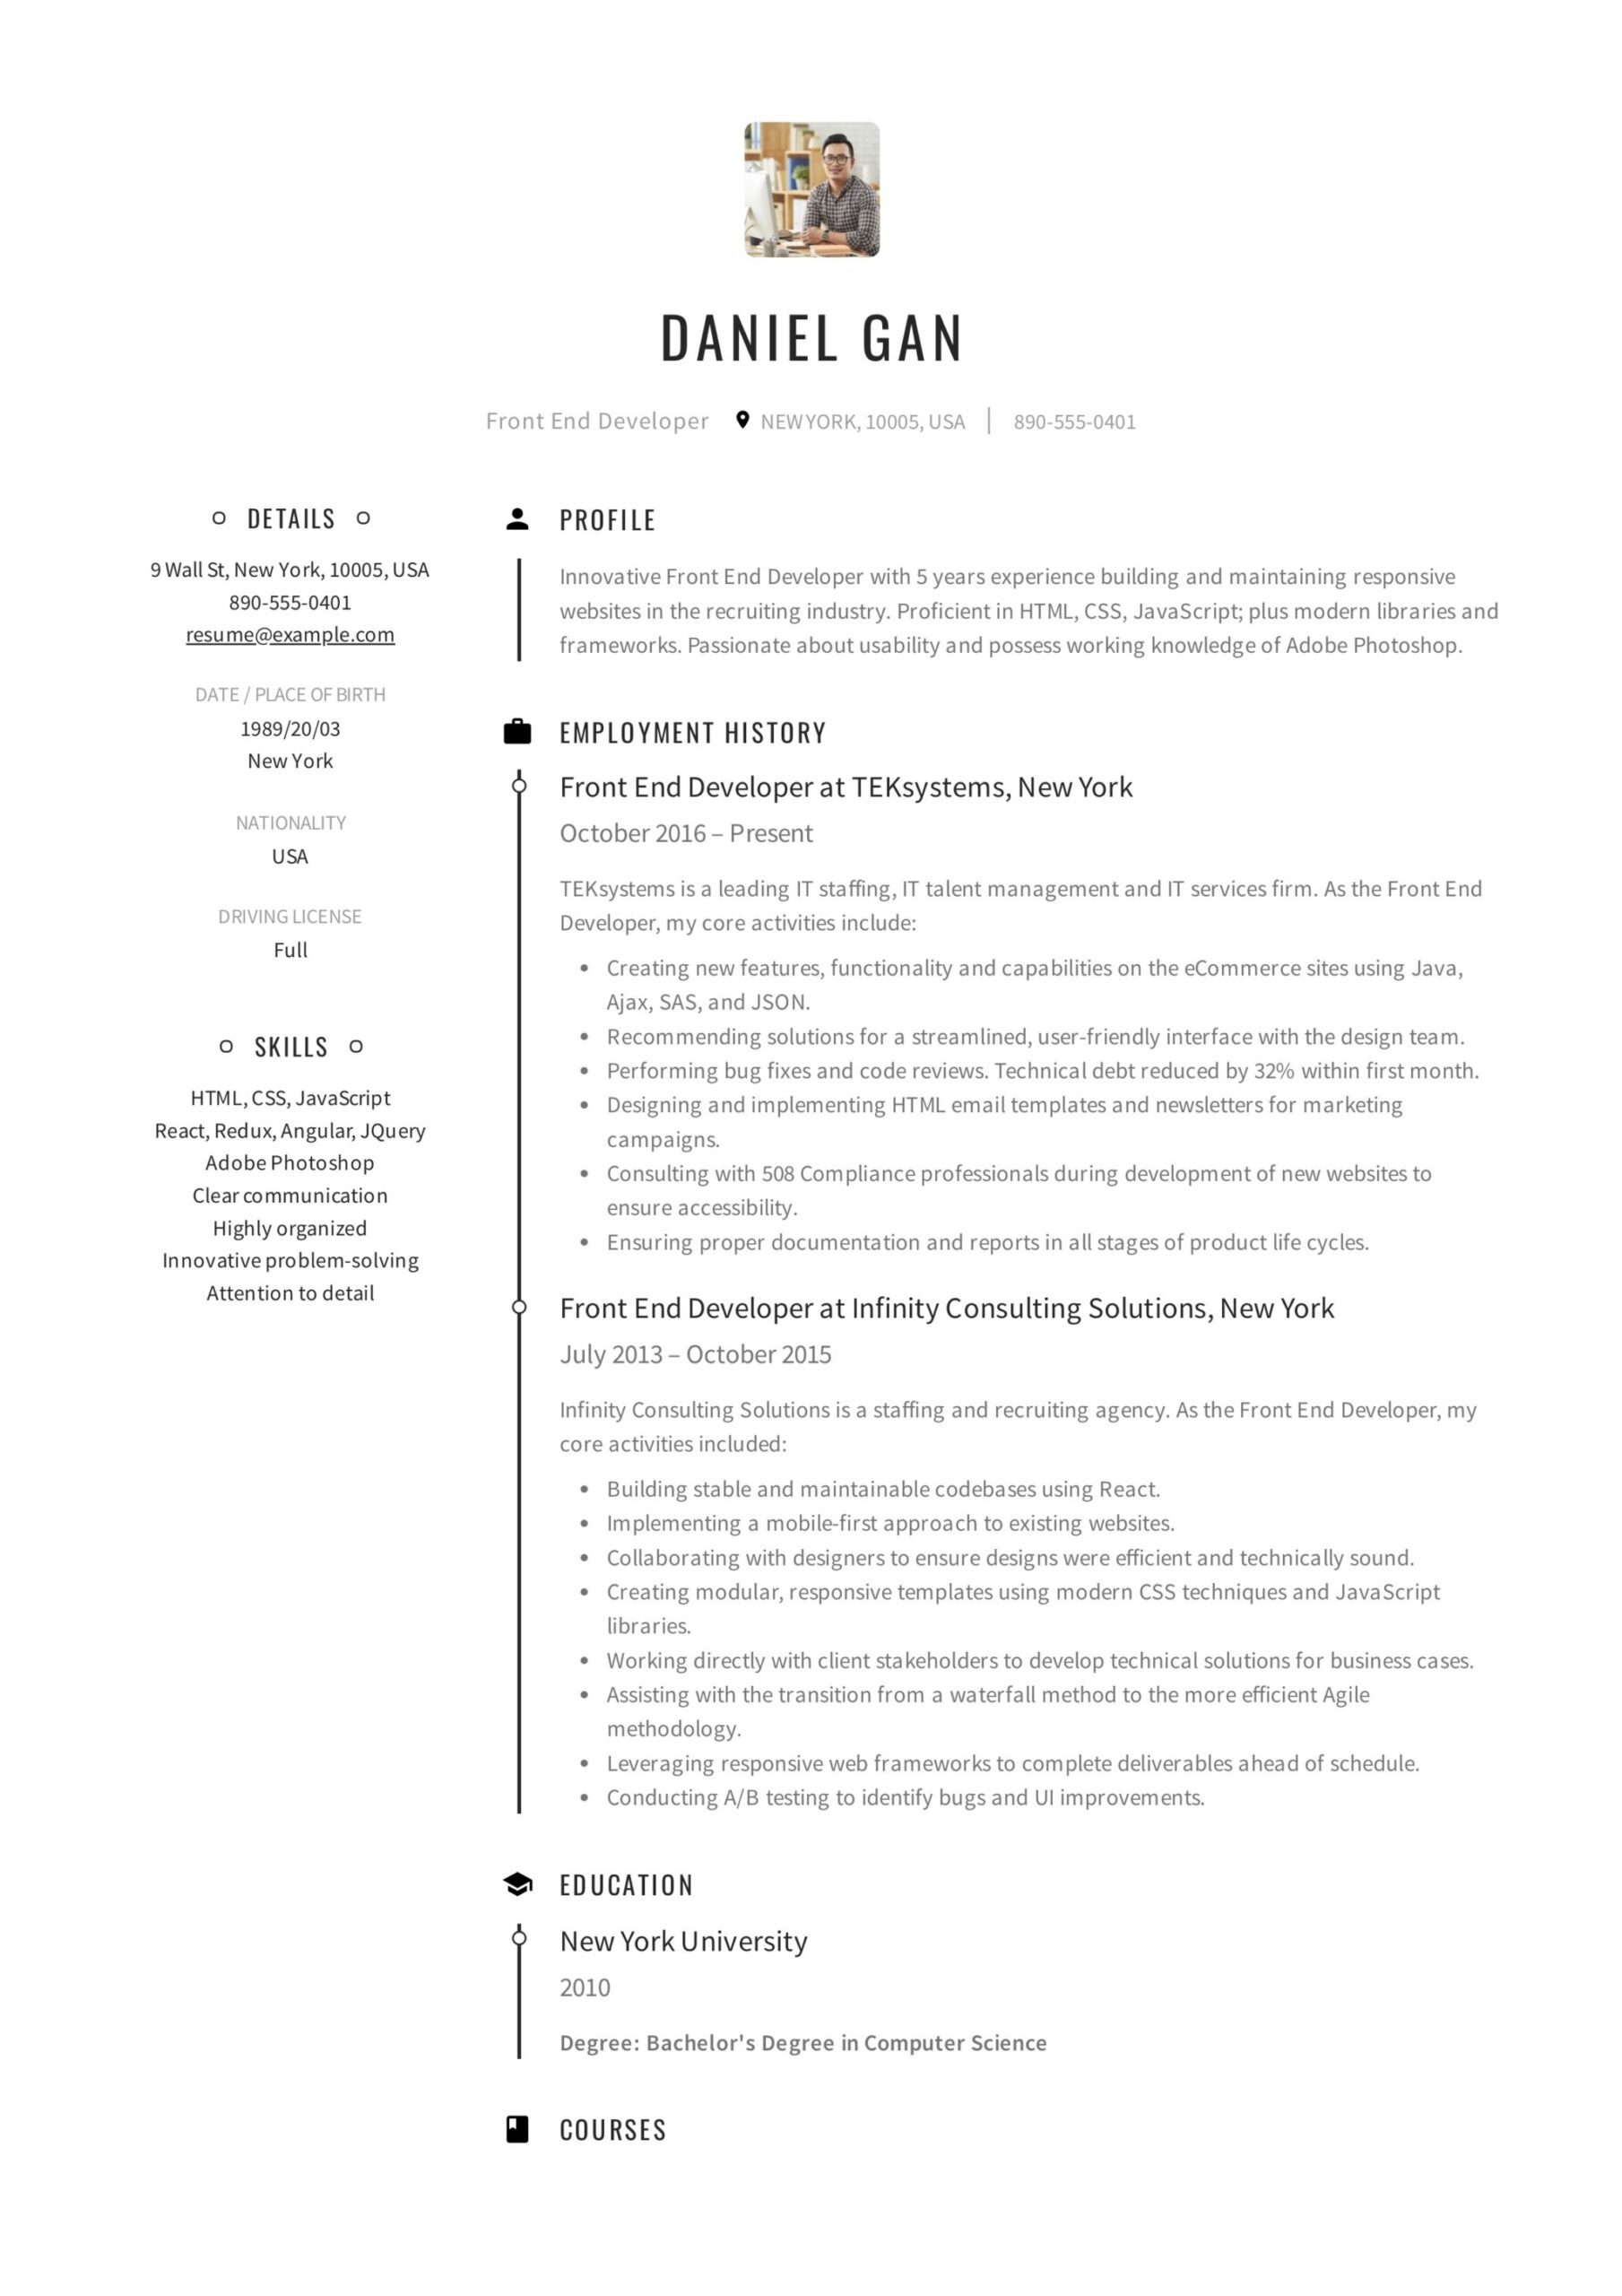 front end developer resume examples guide pdf sample for daniel gan functional template Resume Resume Sample For Front End Developer